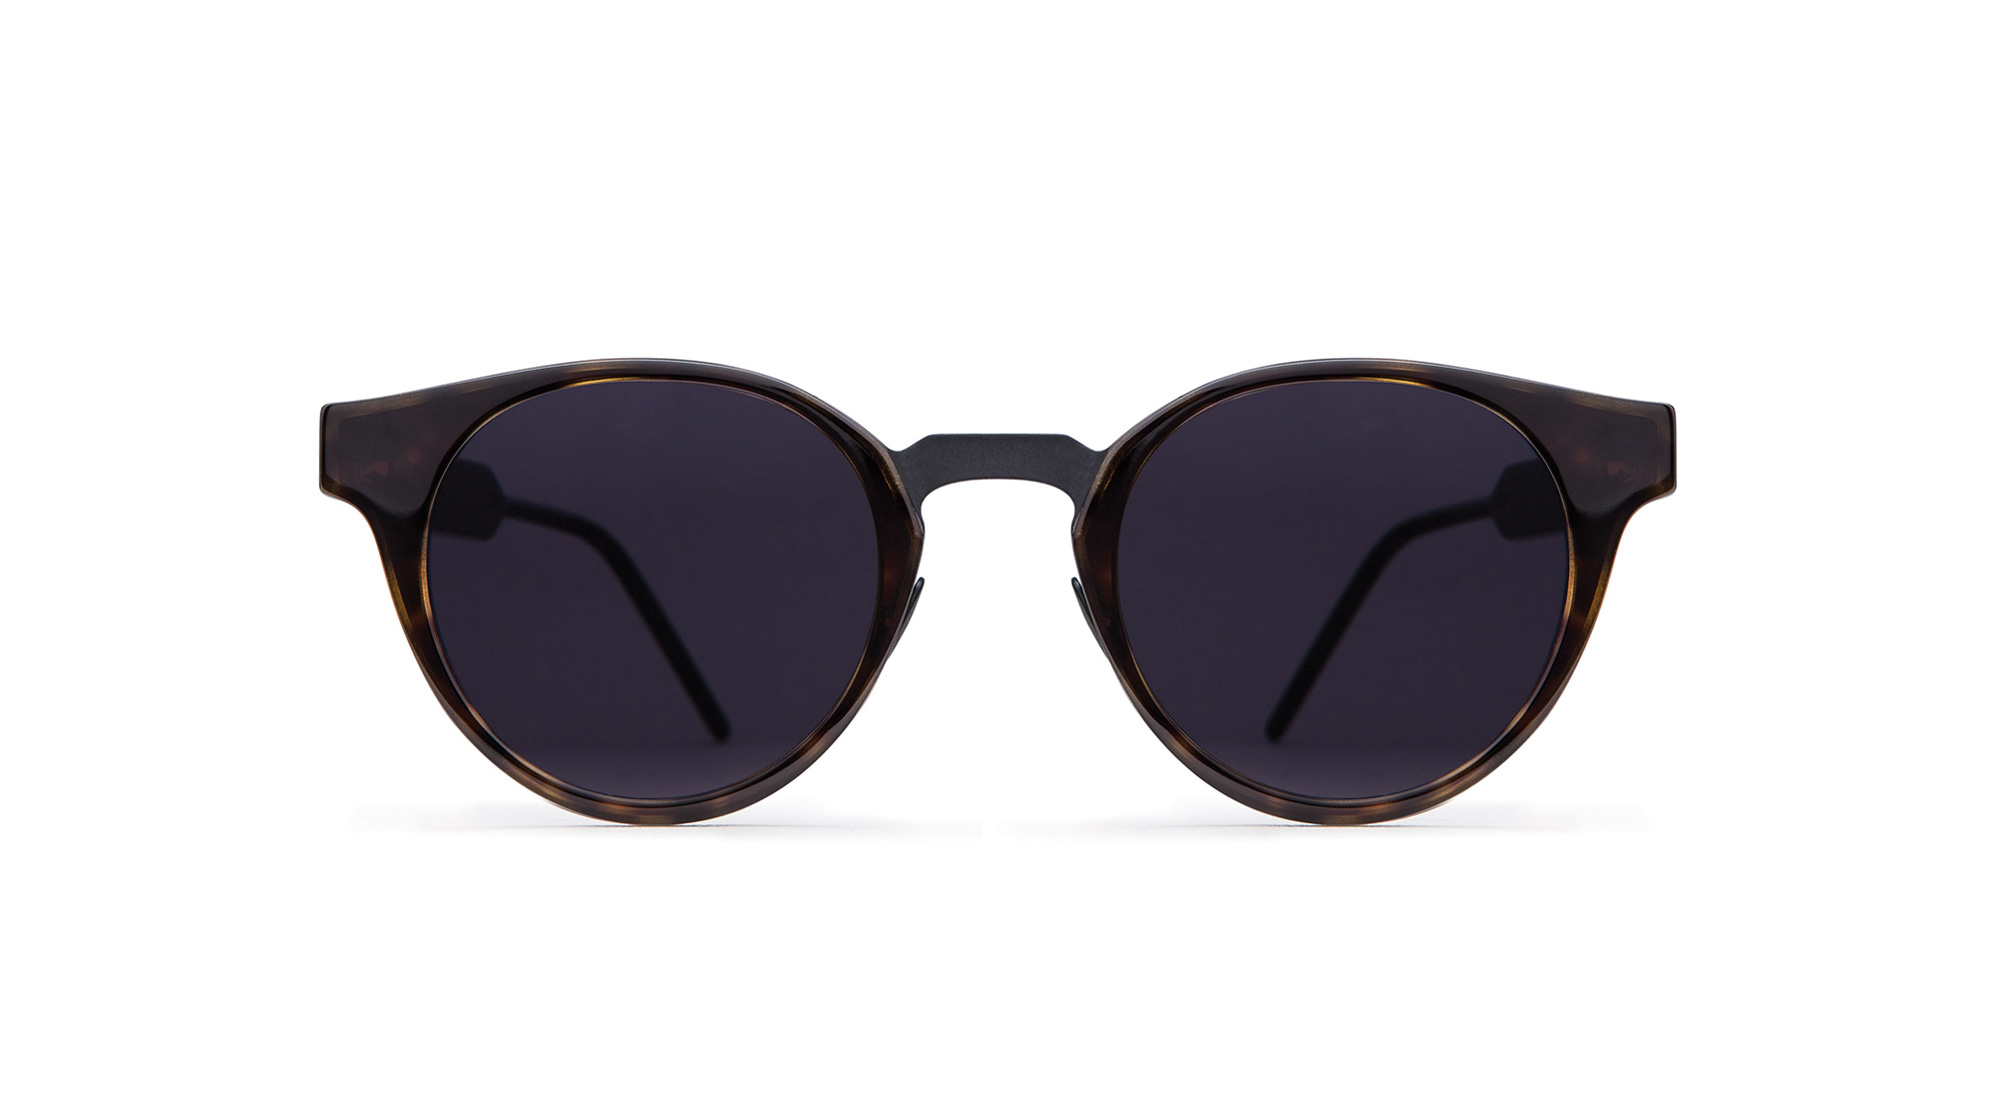 WILLIAMS_Eyewear_SOYA_DarkHavana_FrontalView